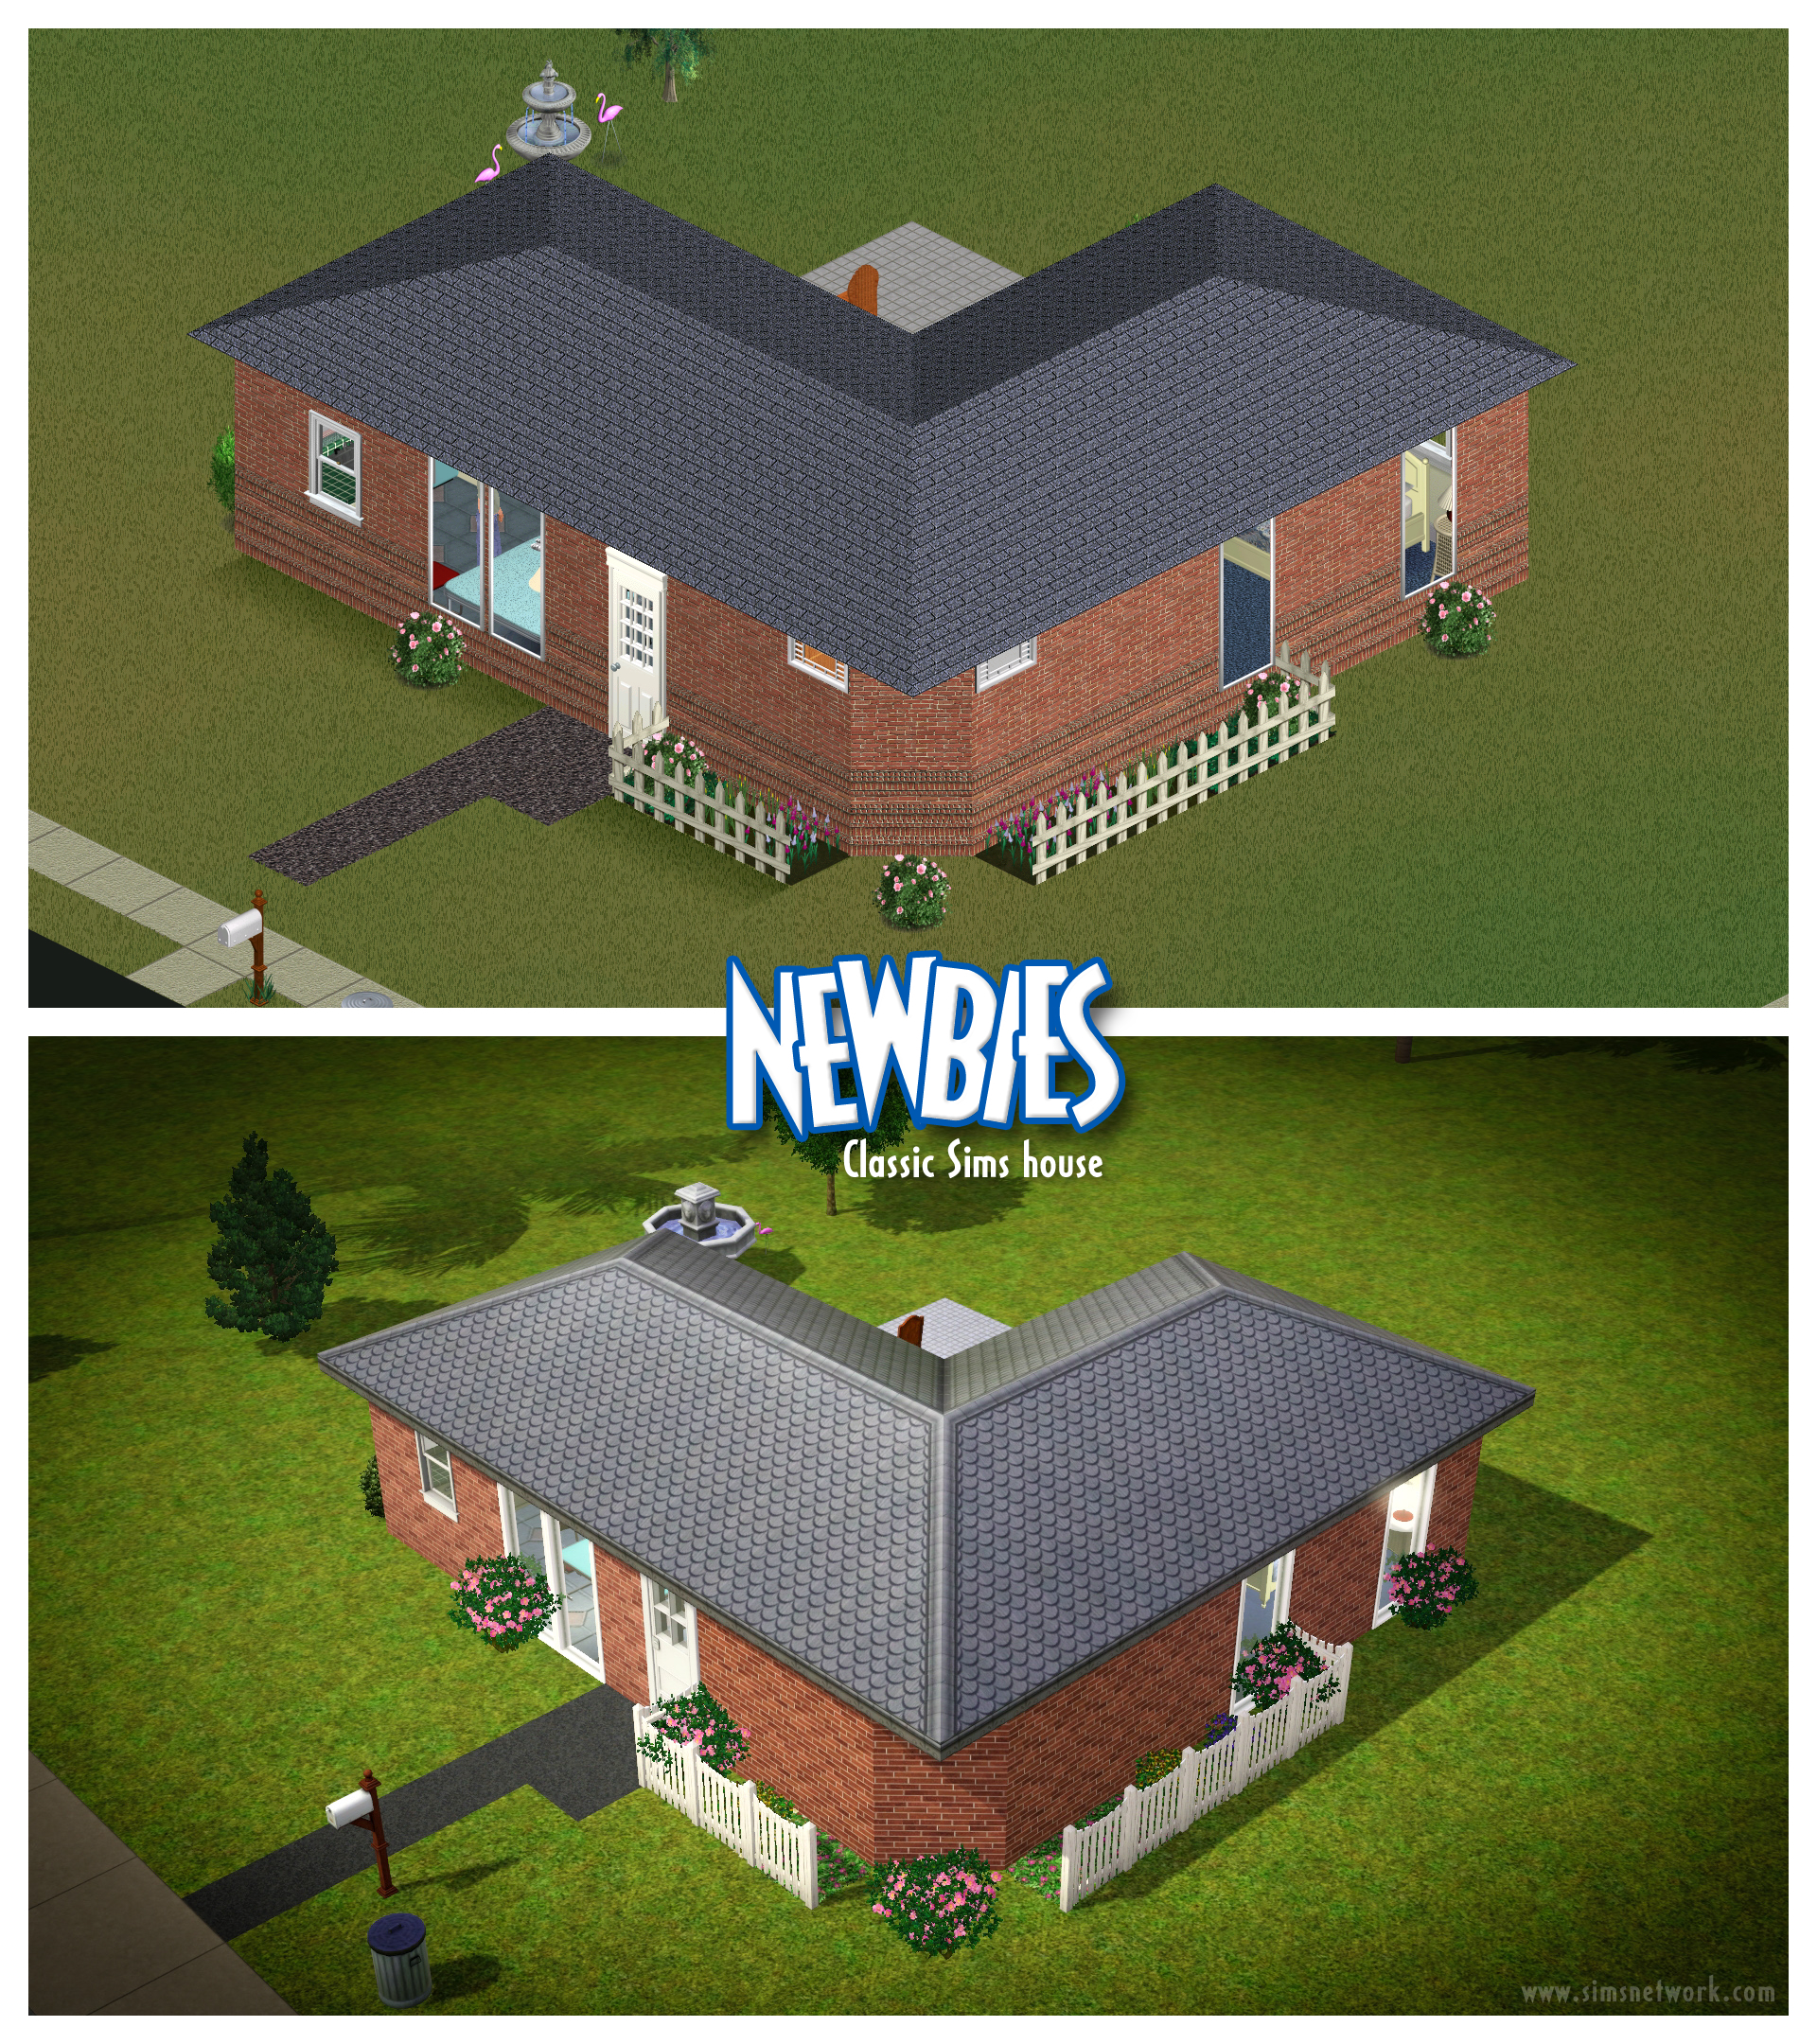 The sims anniversary 2014 snw for Classic house sims 4